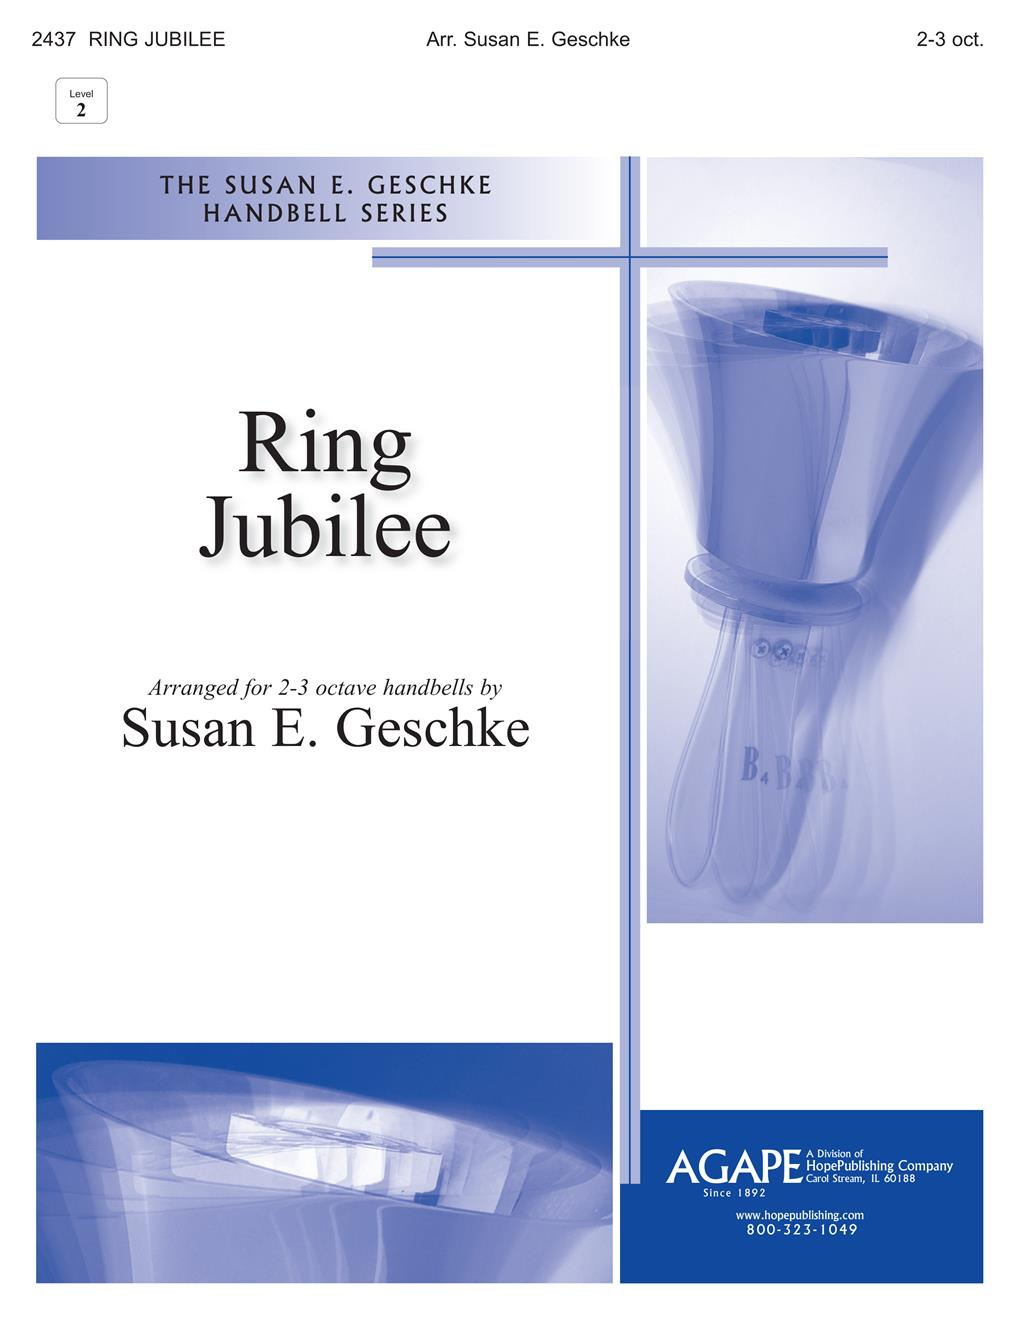 Ring Jubilee - 2 or 3 Oct. Handbell Cover Image